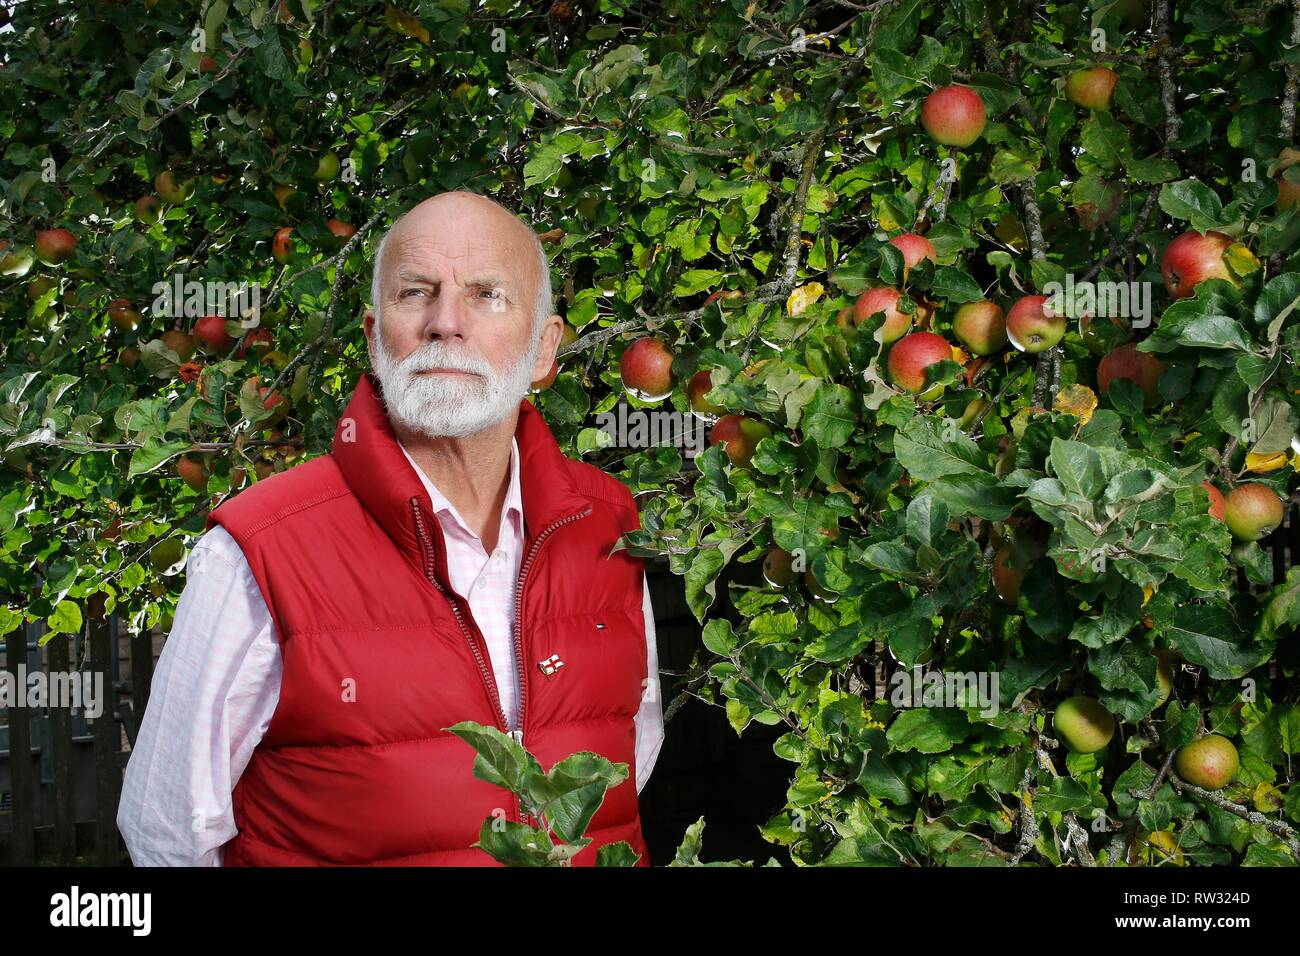 Charles Martell, the renown Gloucestershire apple expert, cheesemaker, distiller, and High Sheriff of Gloucestershire, by an apple tree of Newton Wond - Stock Image